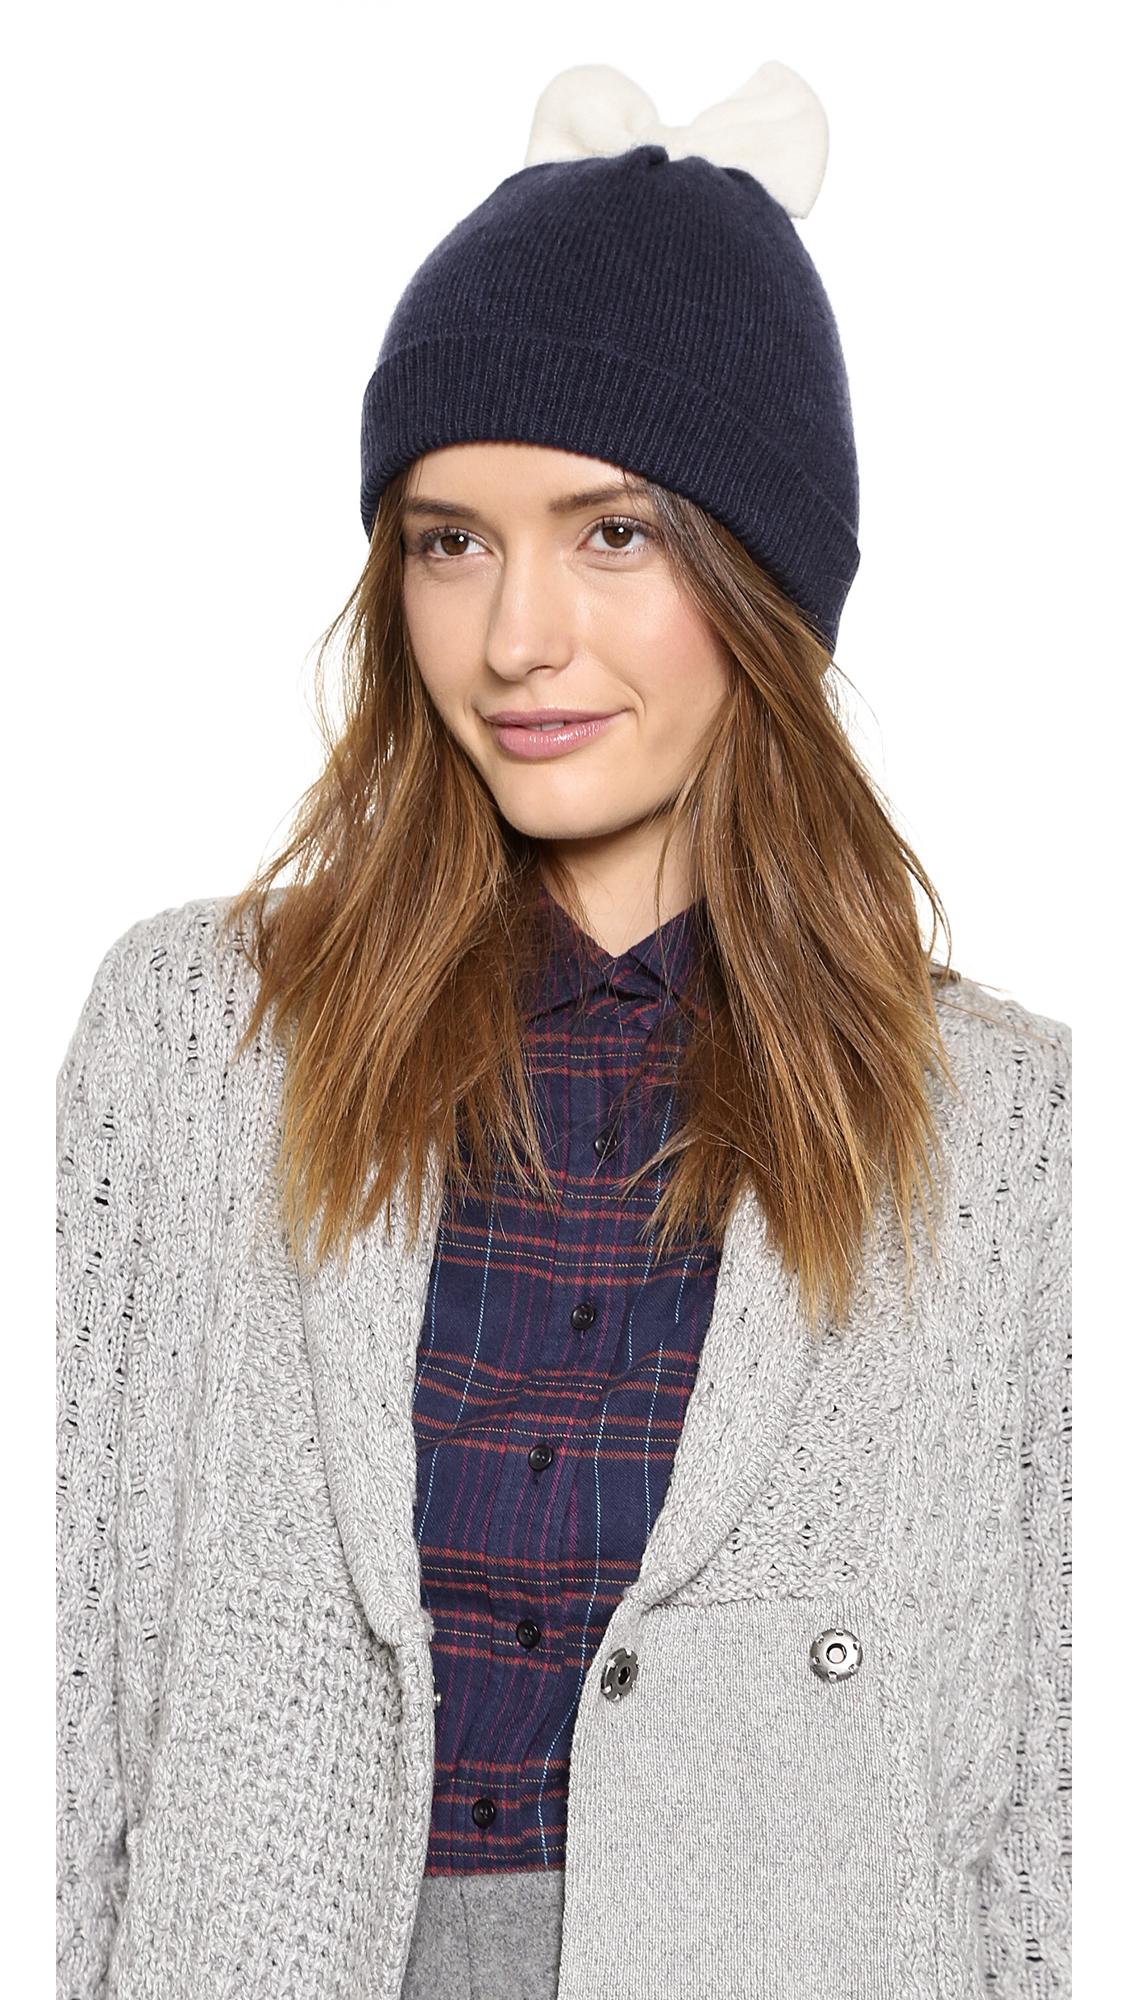 b594315194b Kate Spade New York All the Trimmings Colorblock Beanie